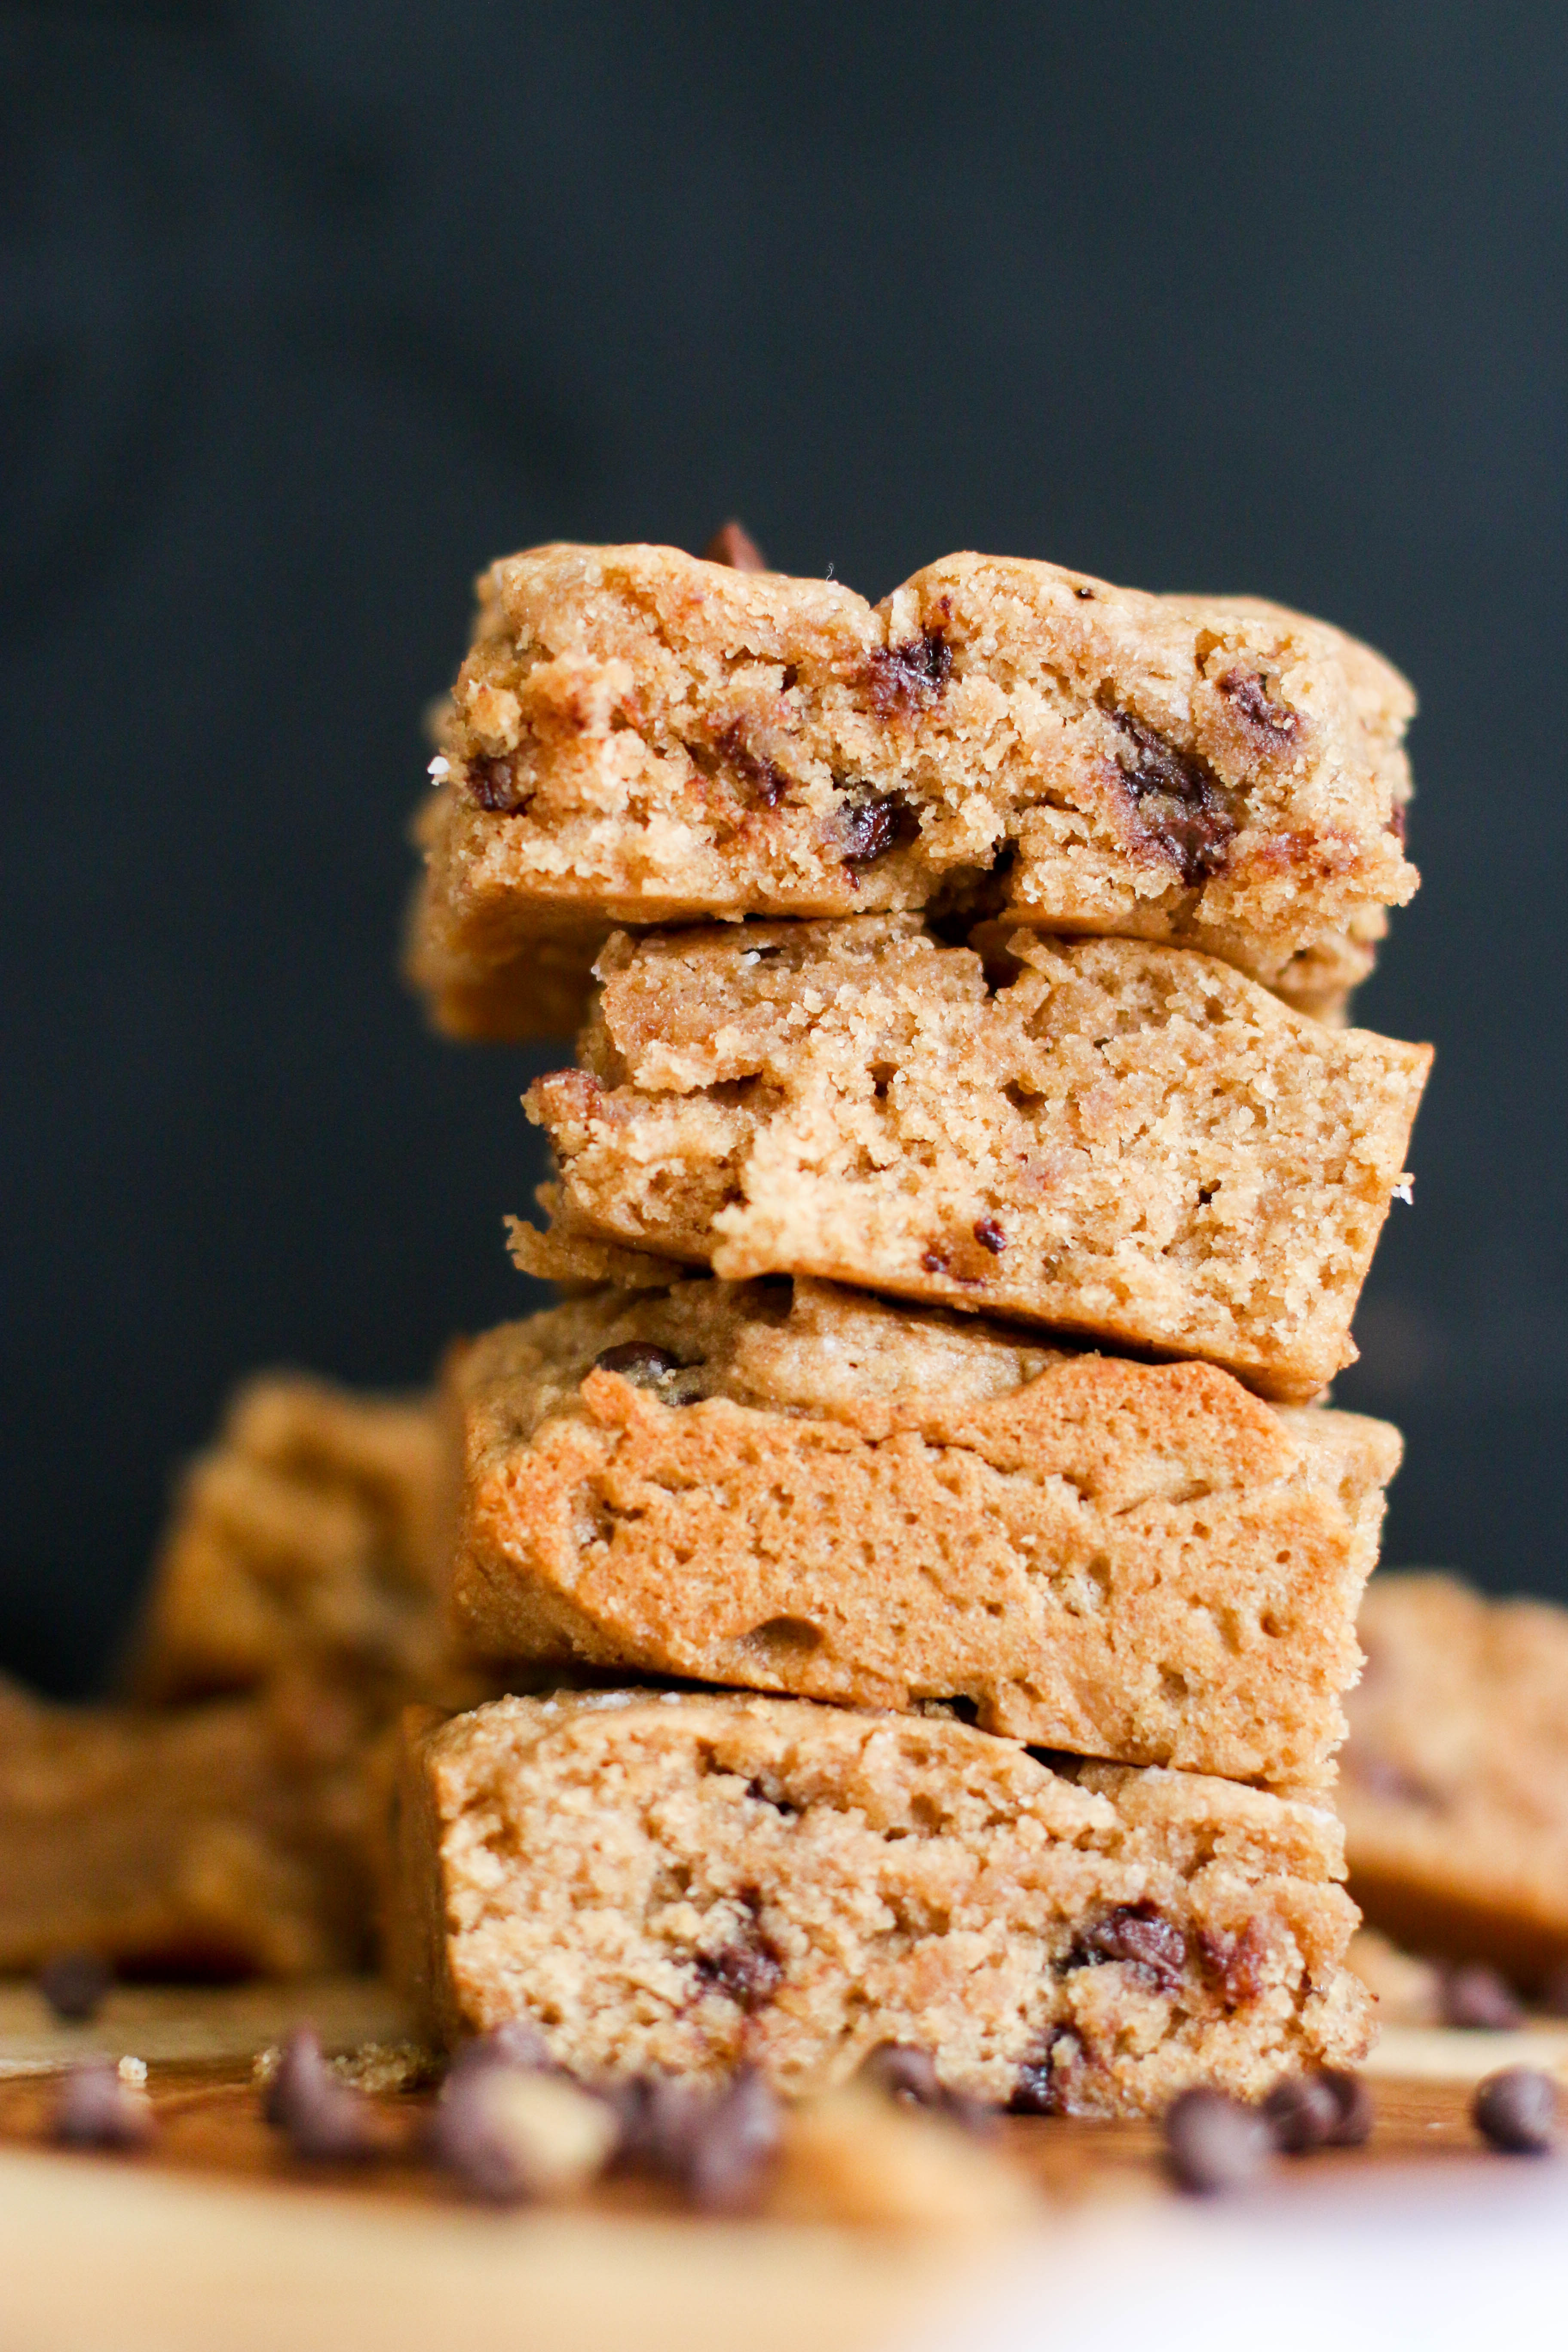 When You Make These Vegan Chocolate Chip Cookie Bars, Dont